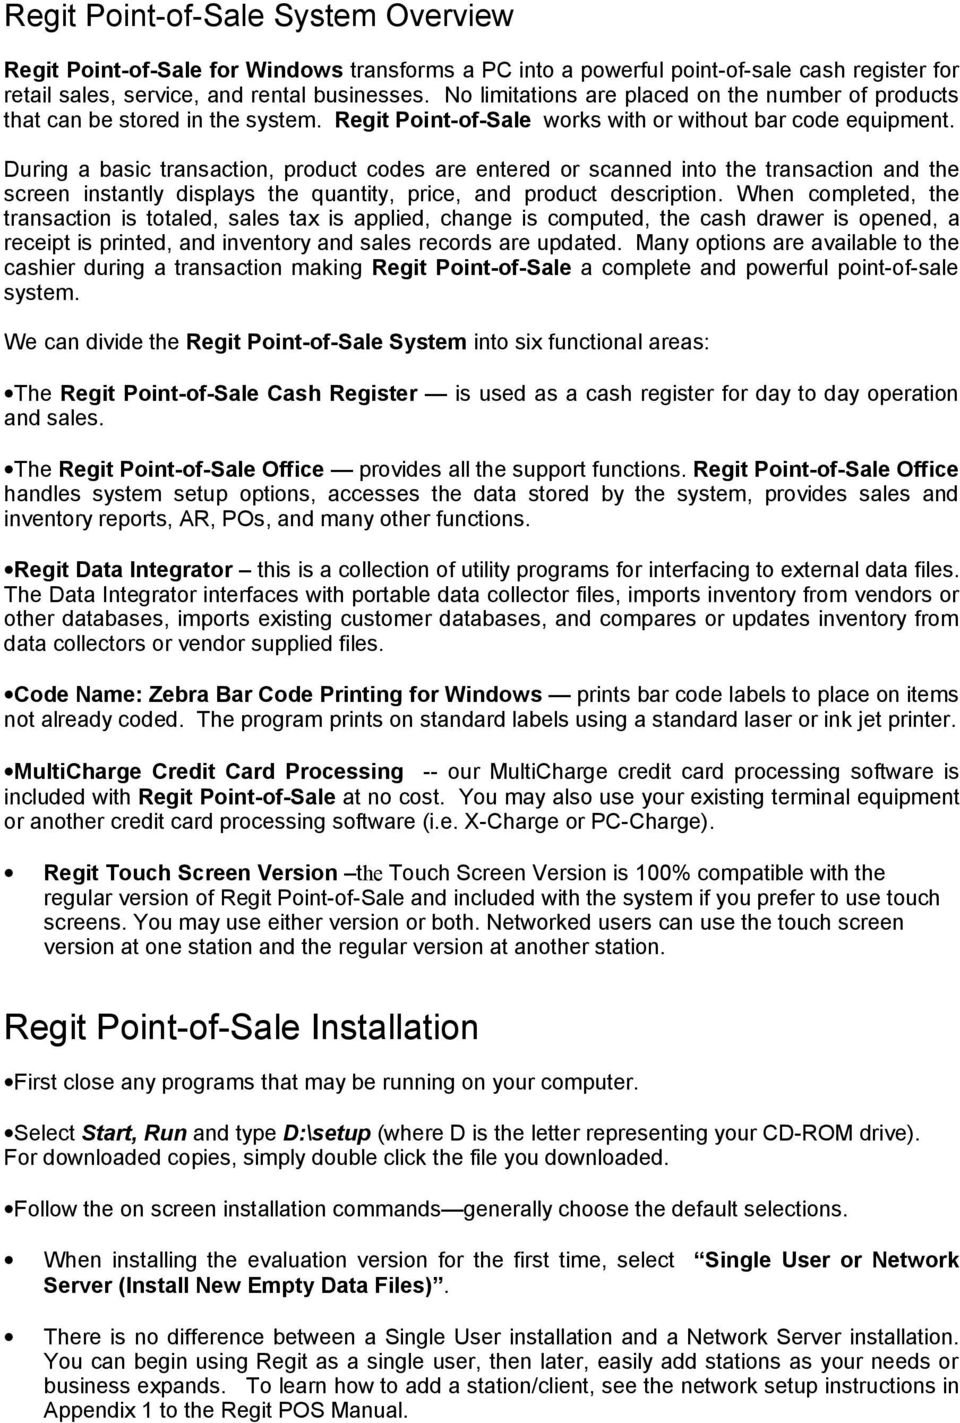 Regit Point-of-Sale  for Windows  Quick Start Guide - PDF